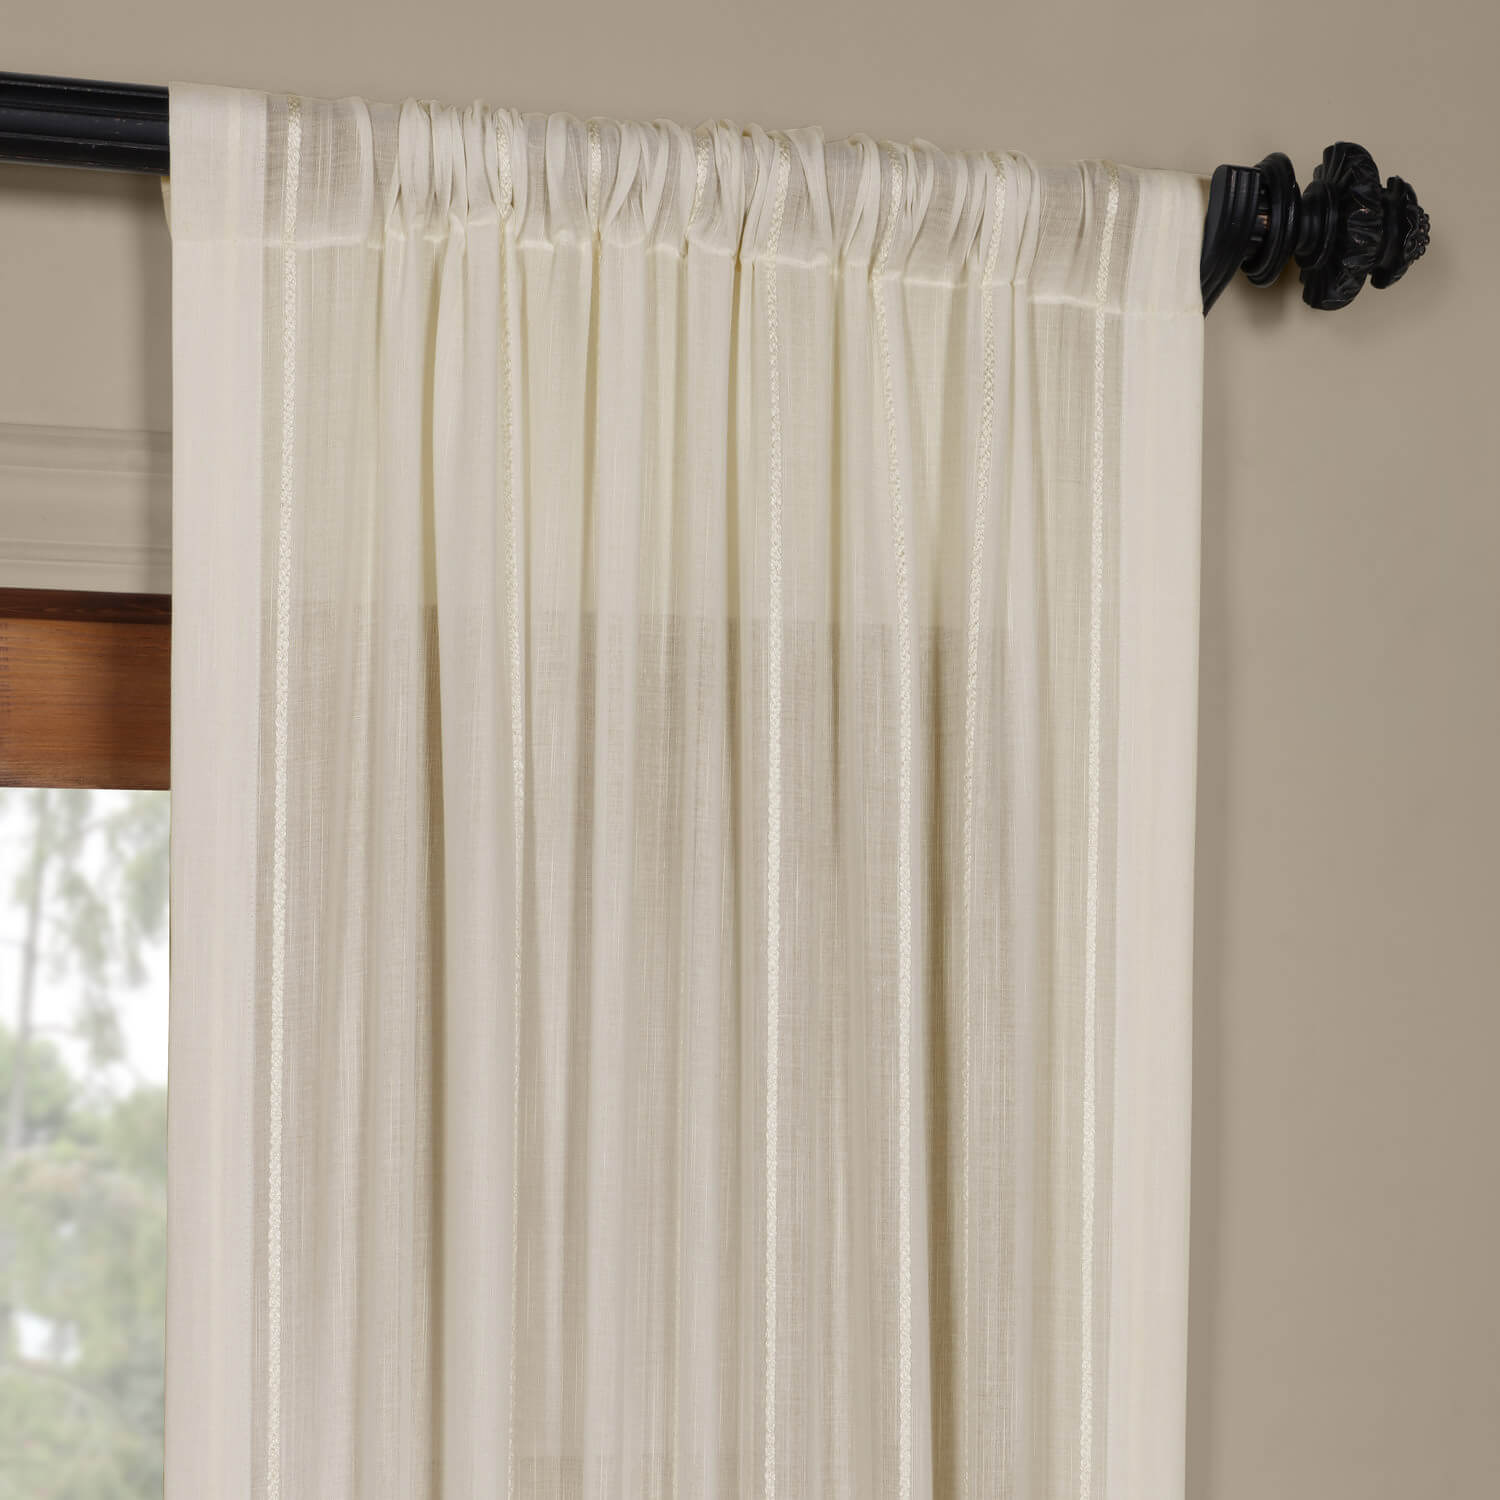 Buy Aruba White Striped Linen Sheer Curtain Drapes